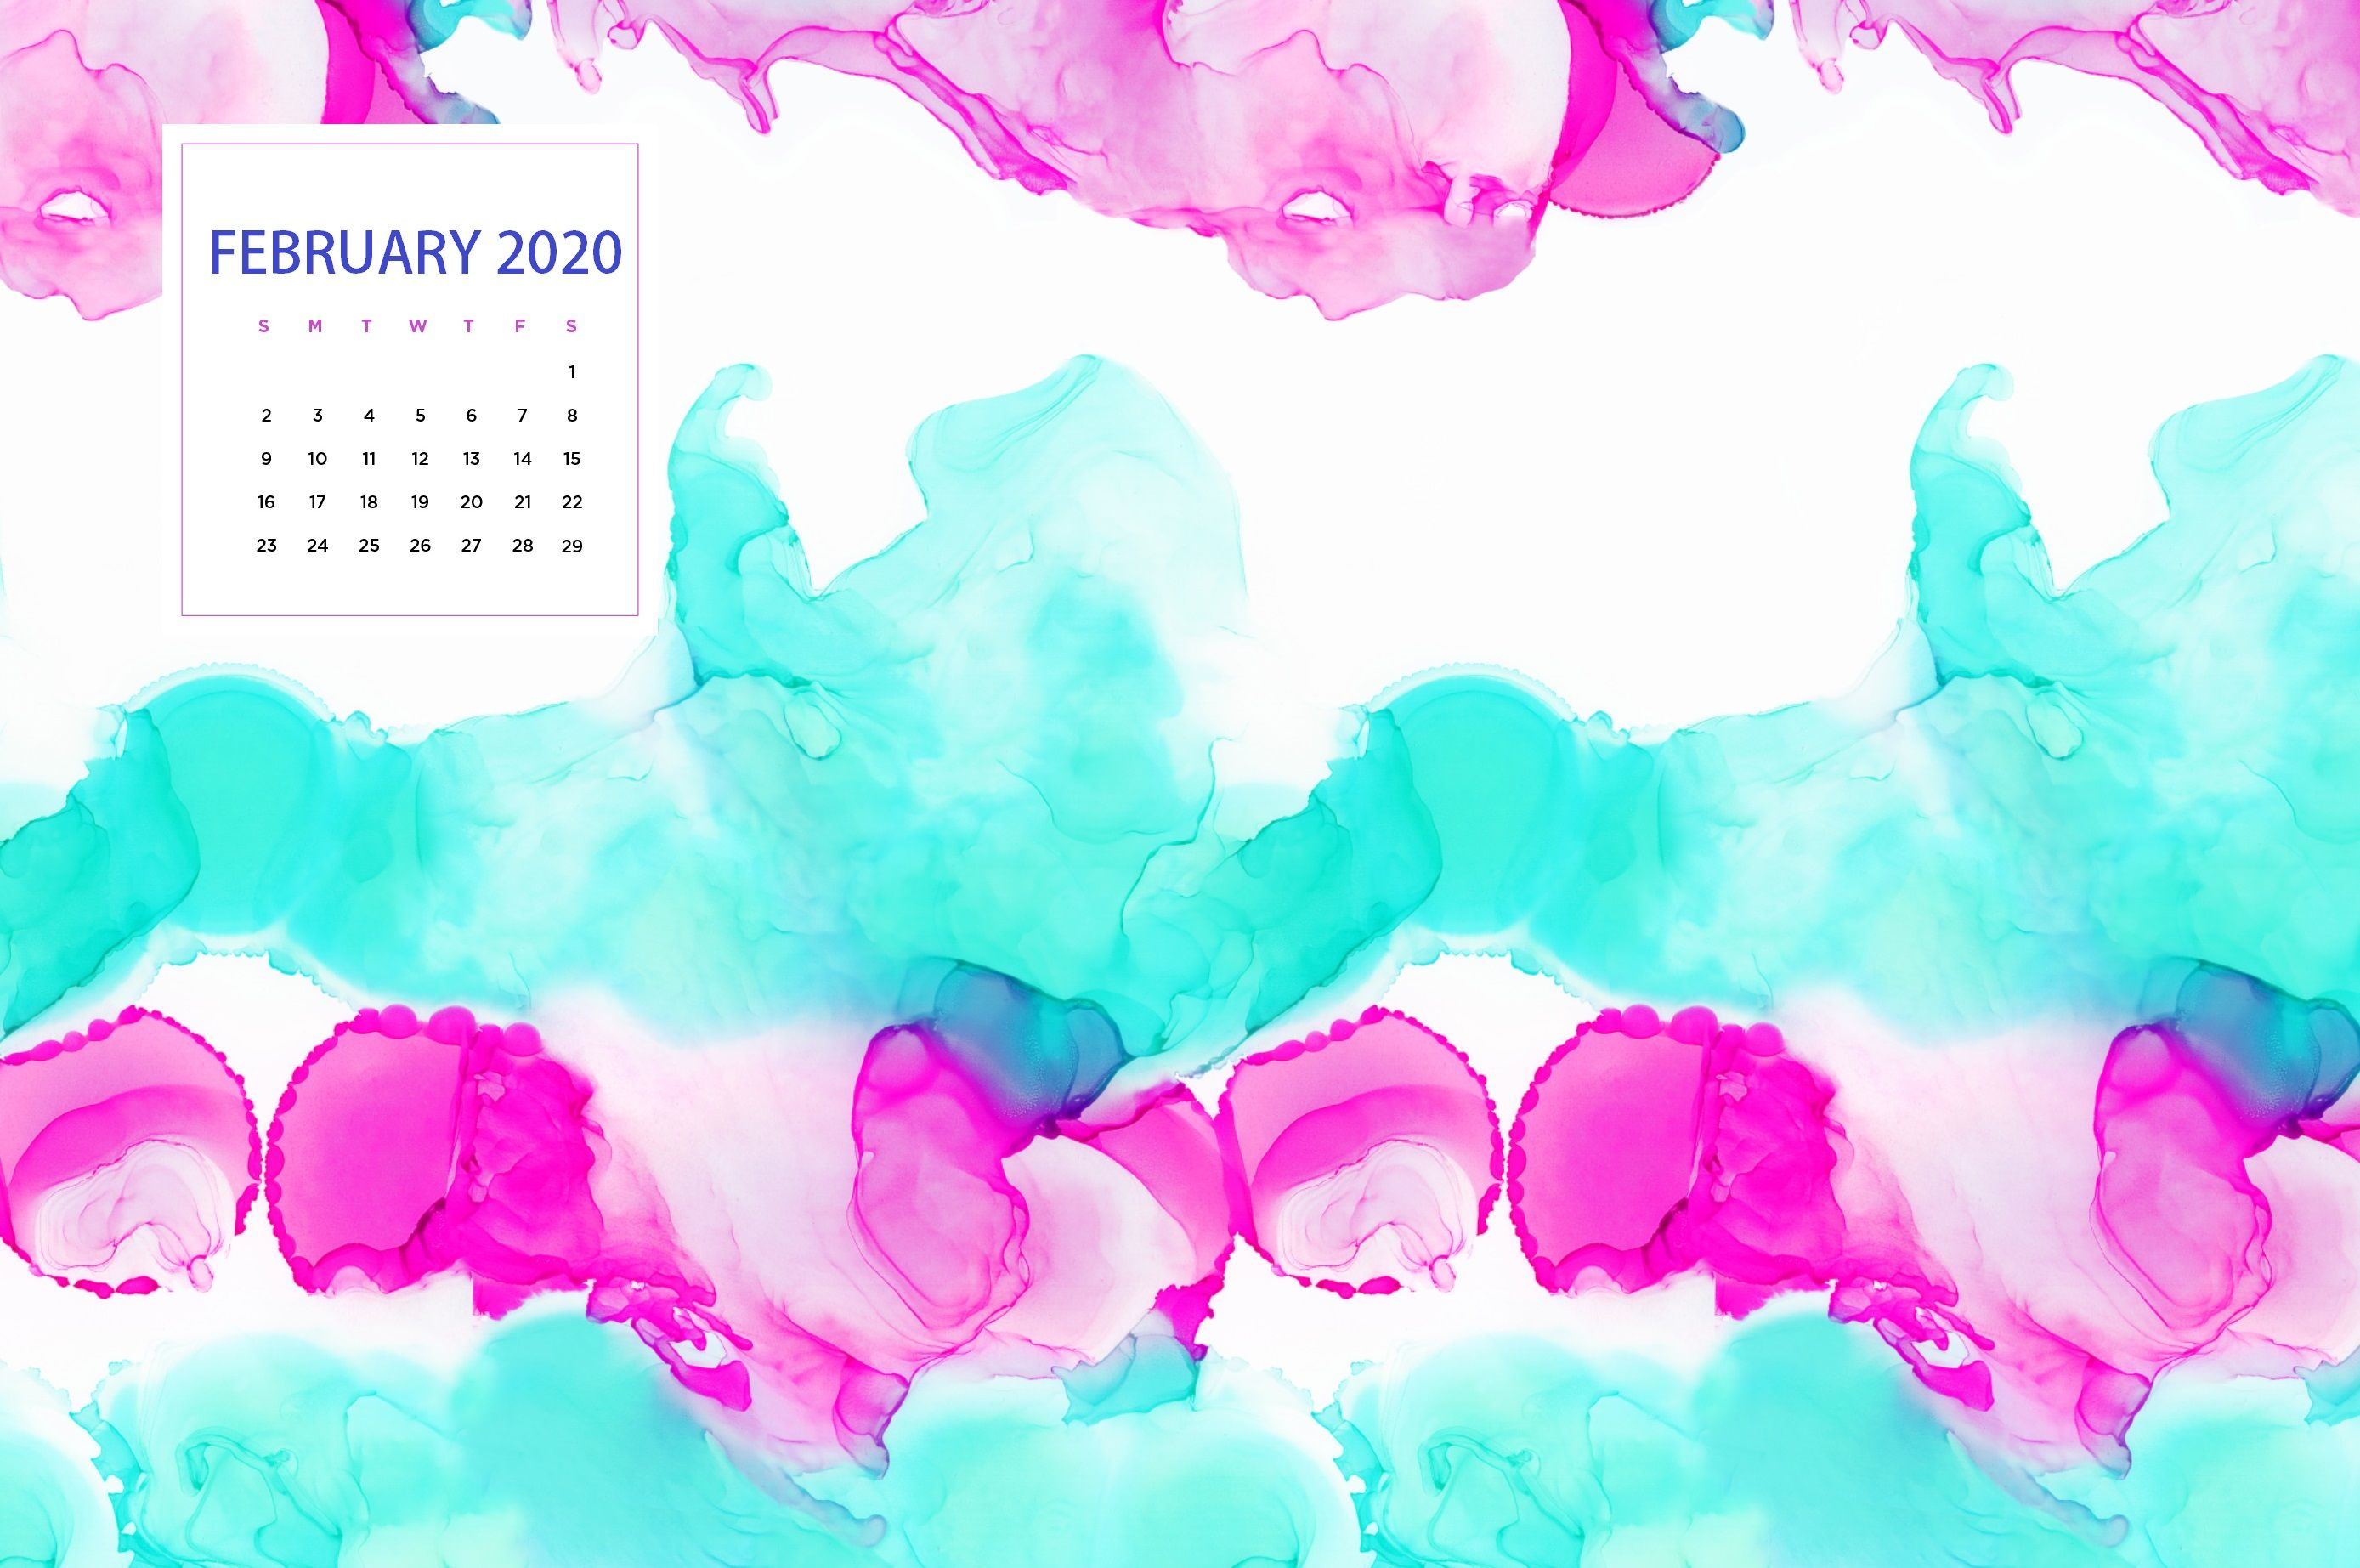 February 2020 Calendar Wallpapers   Top February 2020 2777x1845